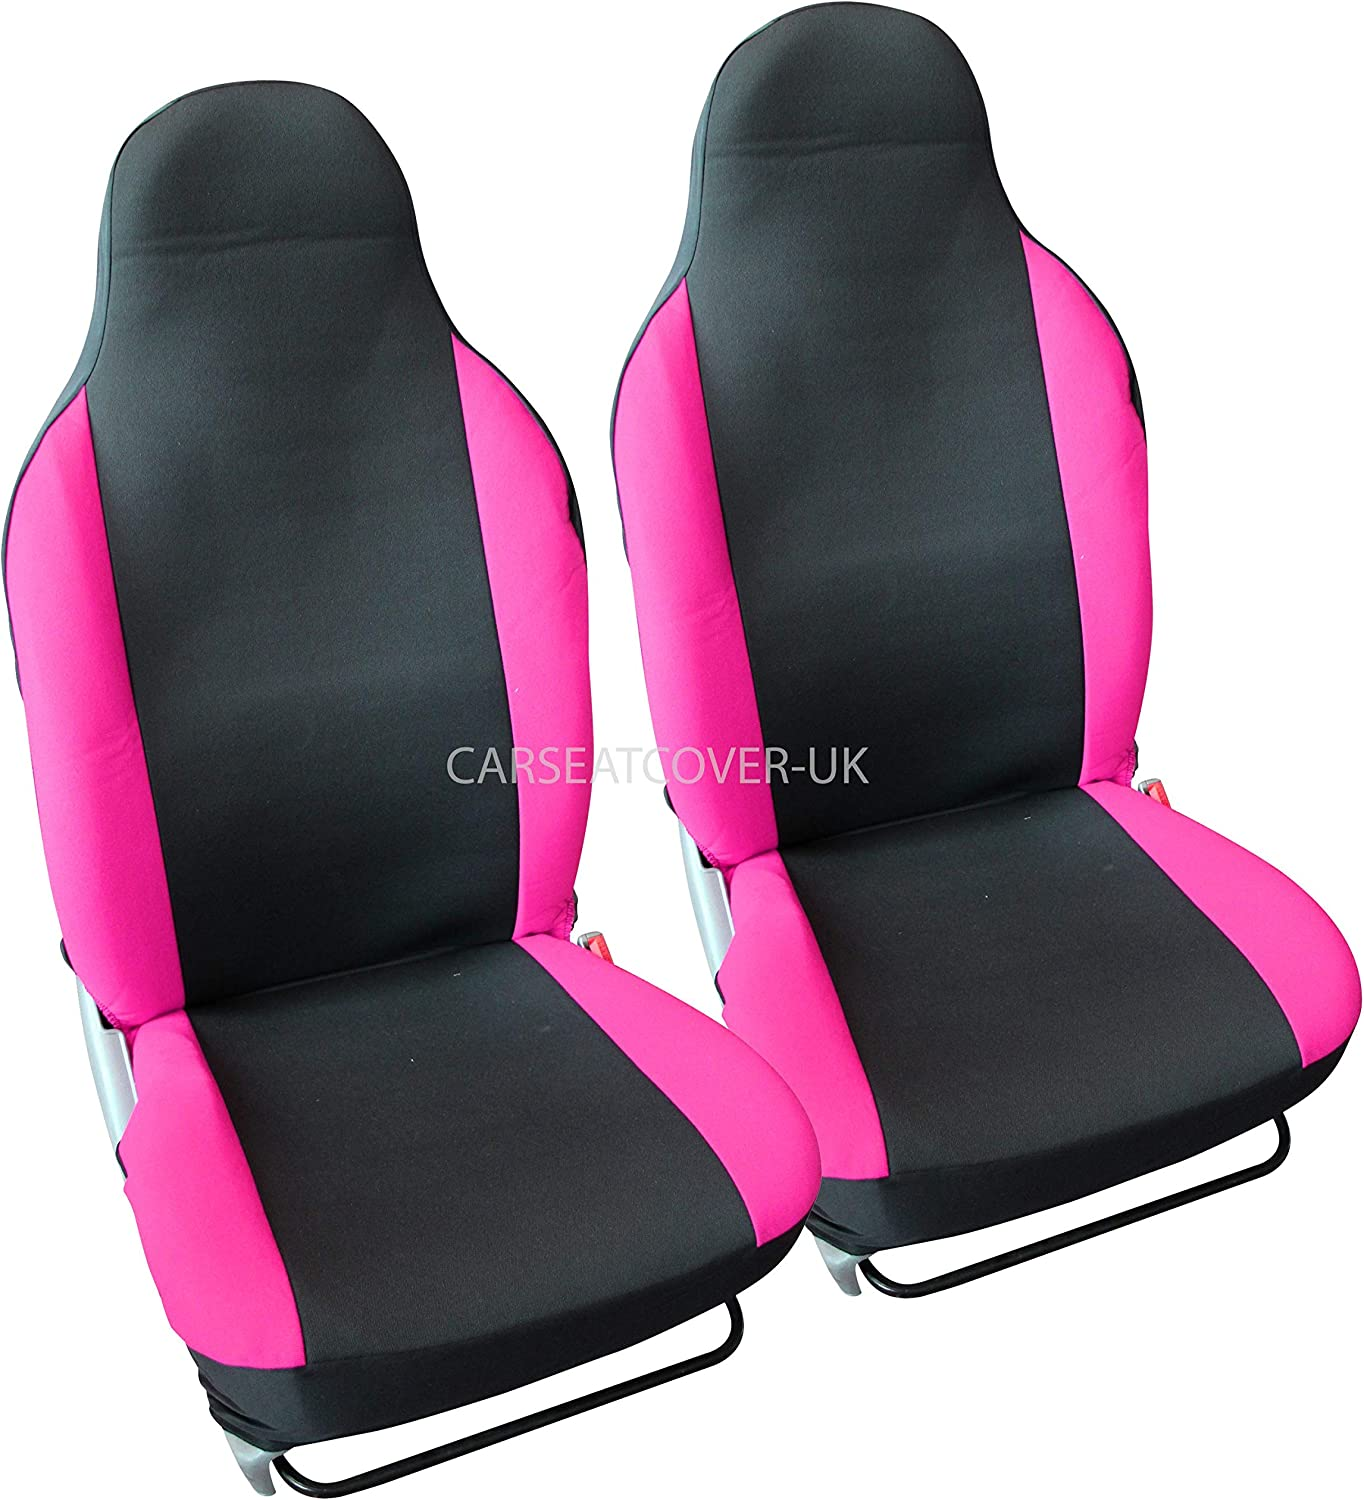 Carseatcover-UK Luxury Black /& Orange Car Seat Covers Protectors 2 x Fronts